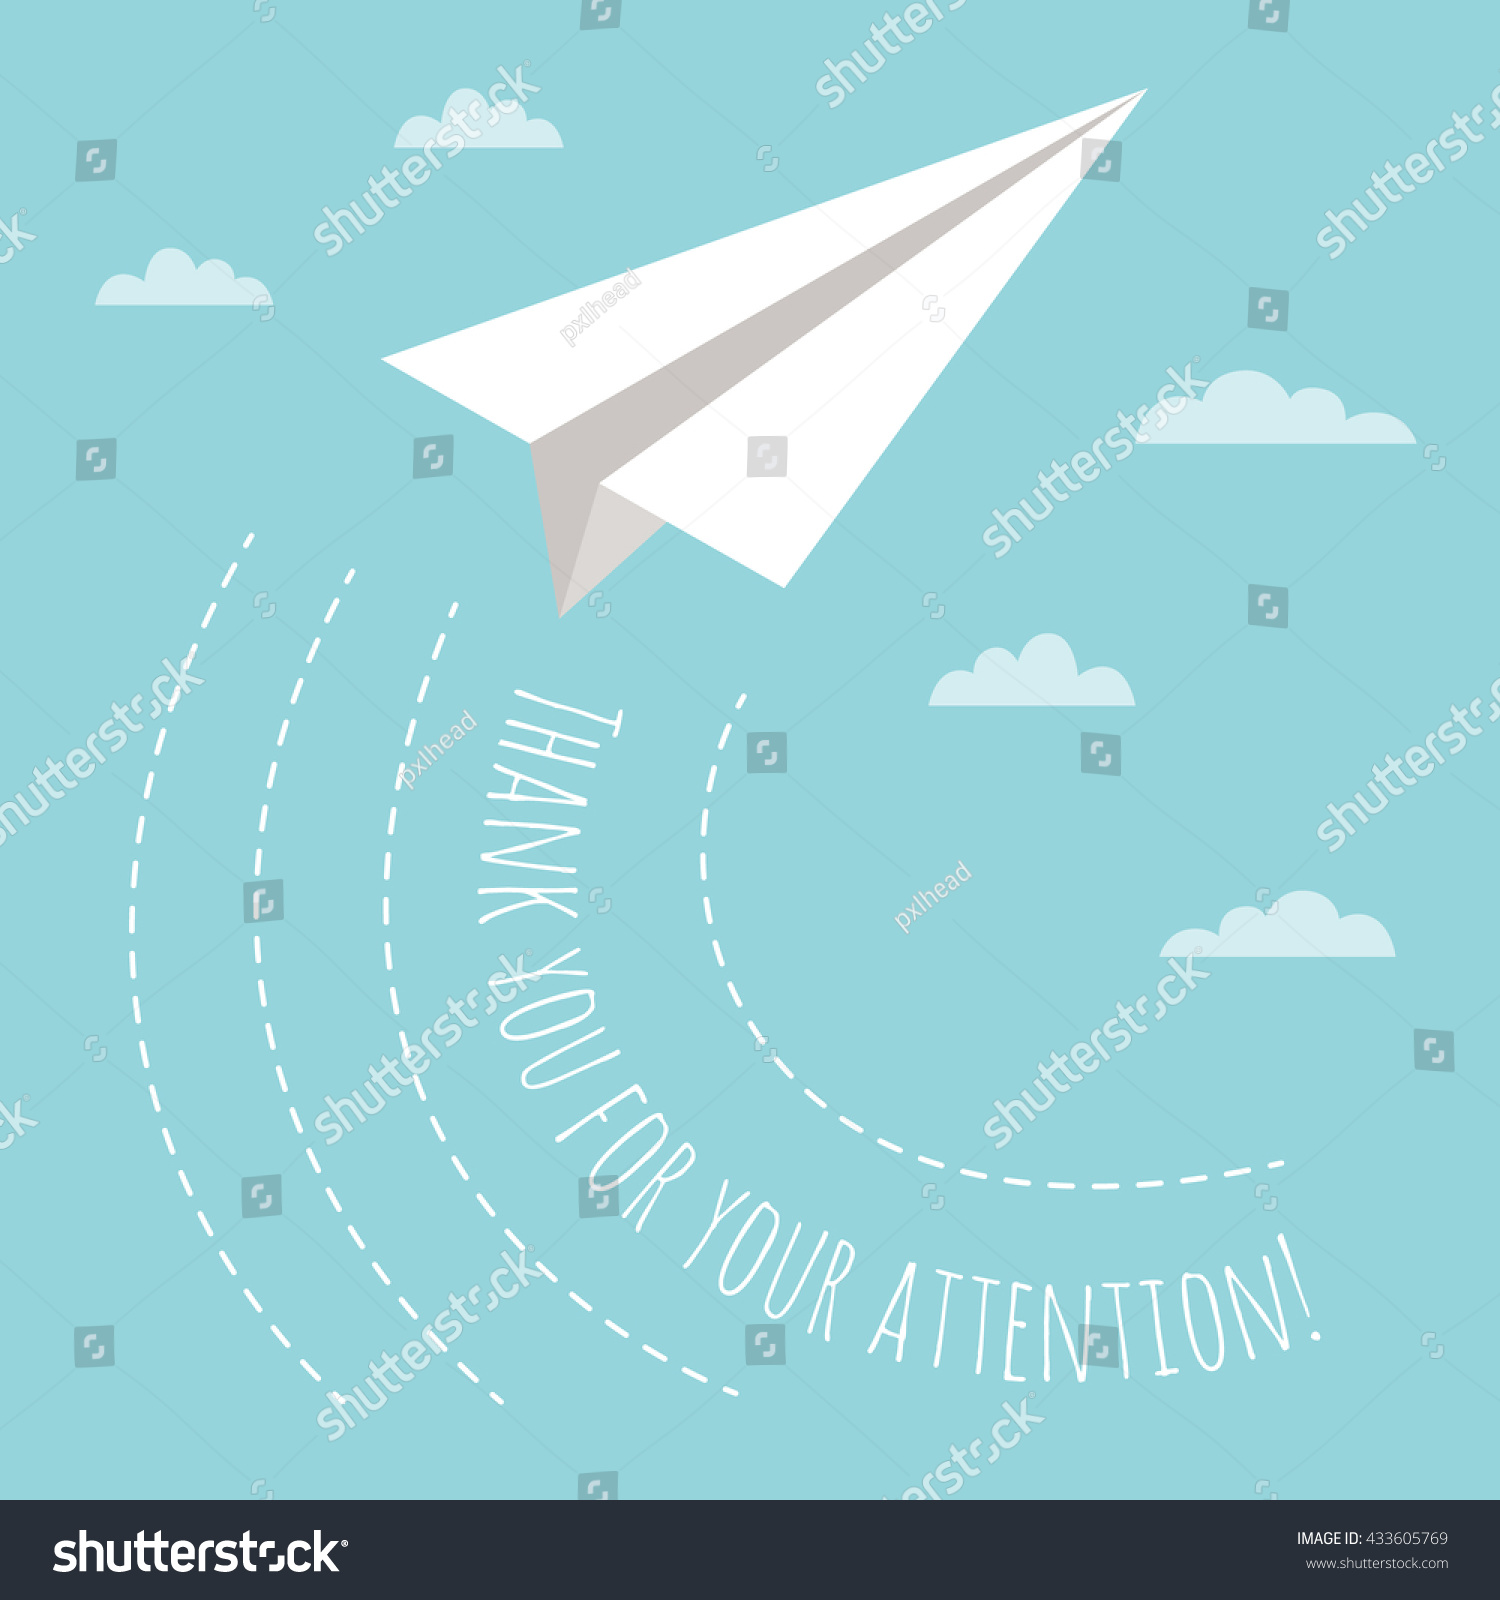 Thank You For Your Attention Concept With Illustration Of Paper Plane And Clouds. Creative Idea For The End Of Business Presentation. - 433605769 ...